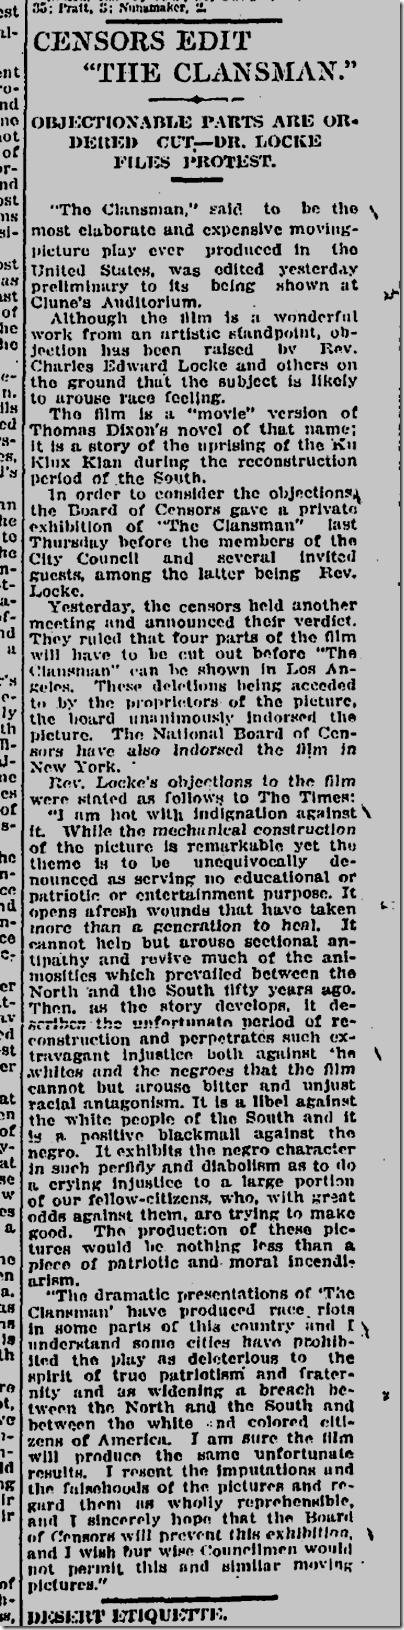 Jan. 31, 1915, The Clansman